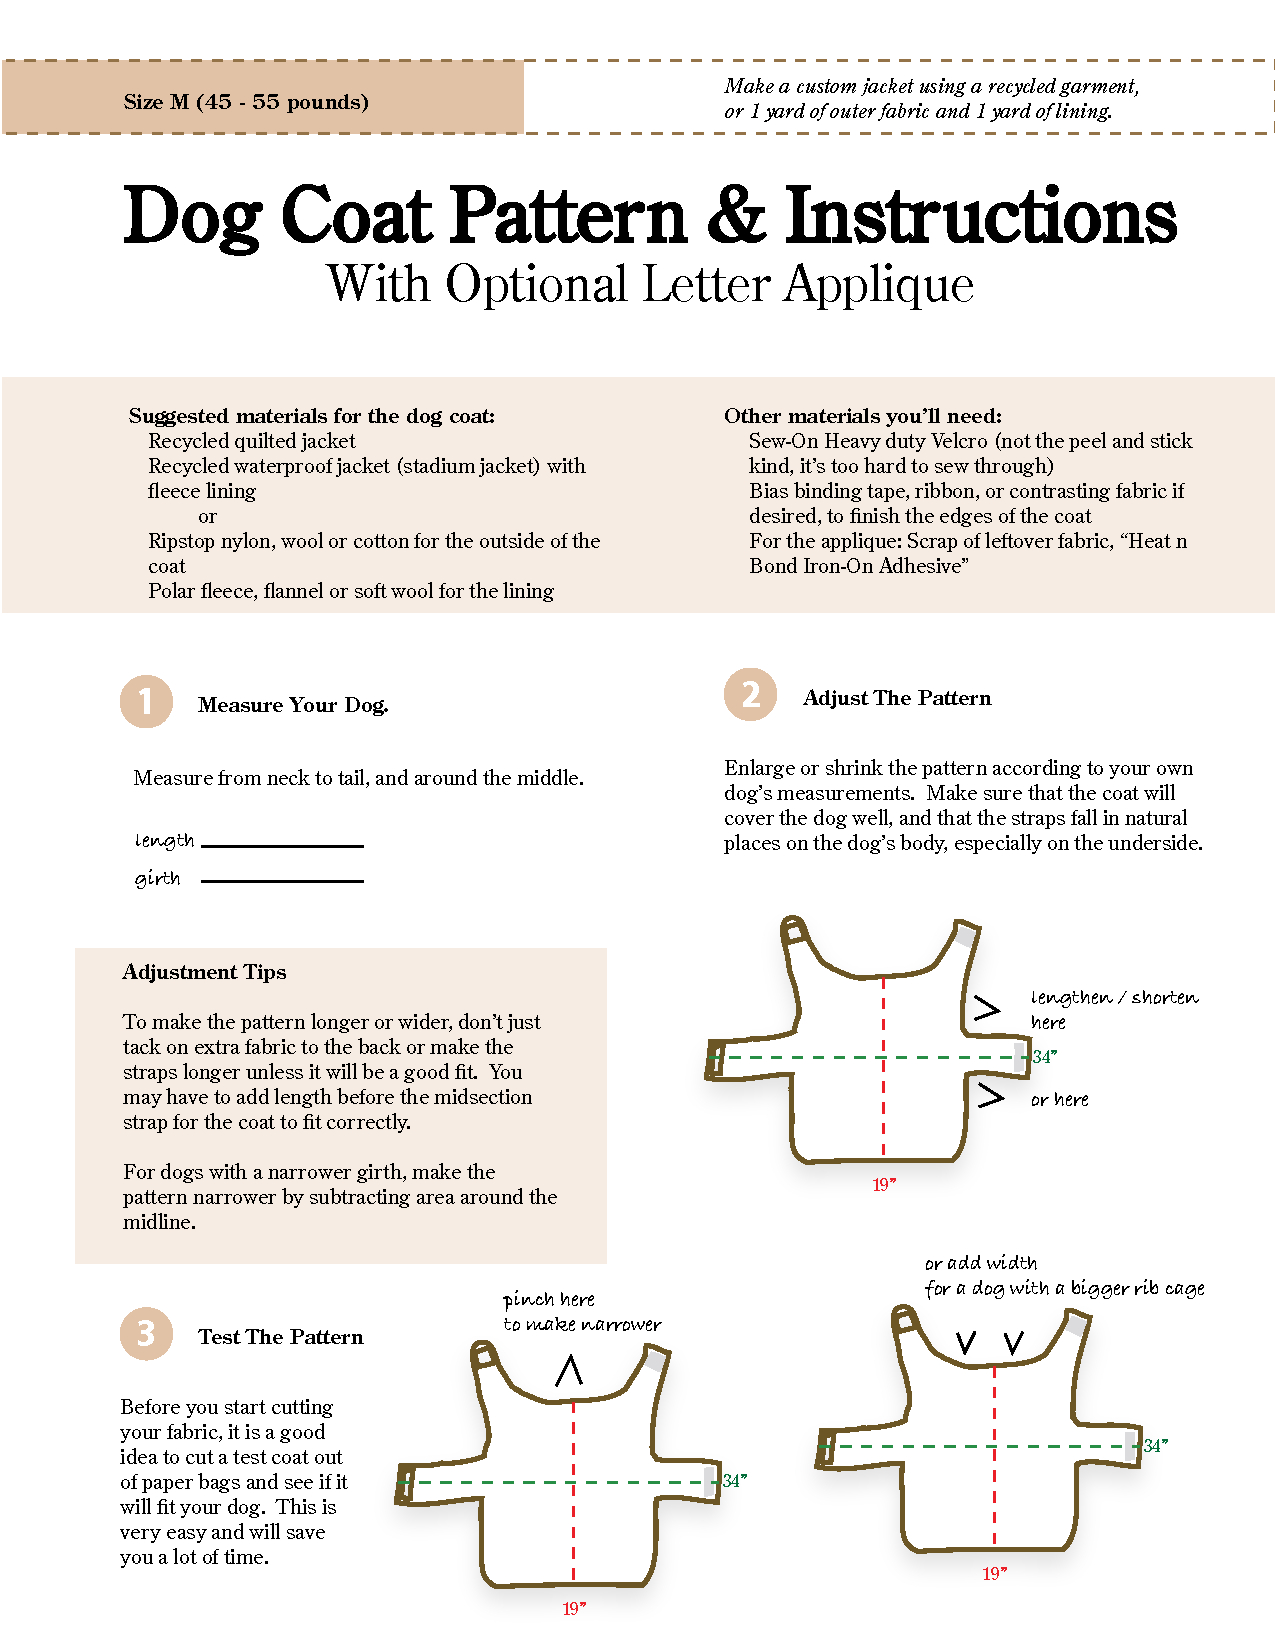 Free Sewing Patterns For Dog Clothes - New Zealand Of Gold Discovery - Free Printable Dog Coat Sewing Patterns